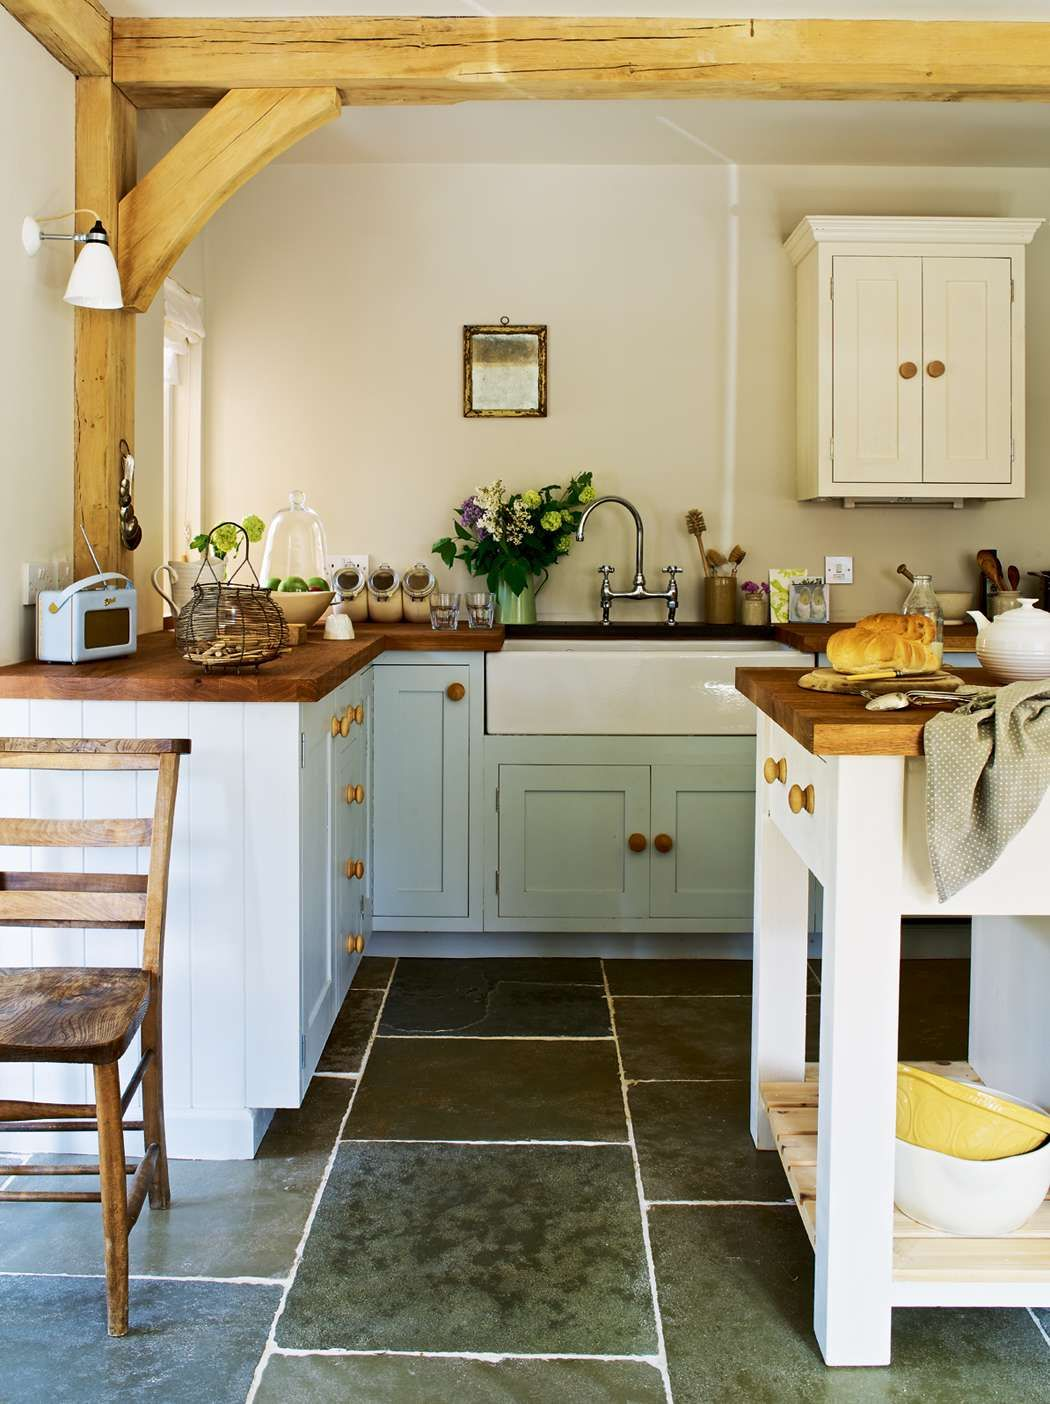 Kitchen Self Design Fair Traditional Farmhouse Kitchen Would You Incorporate A Traditional Design Inspiration